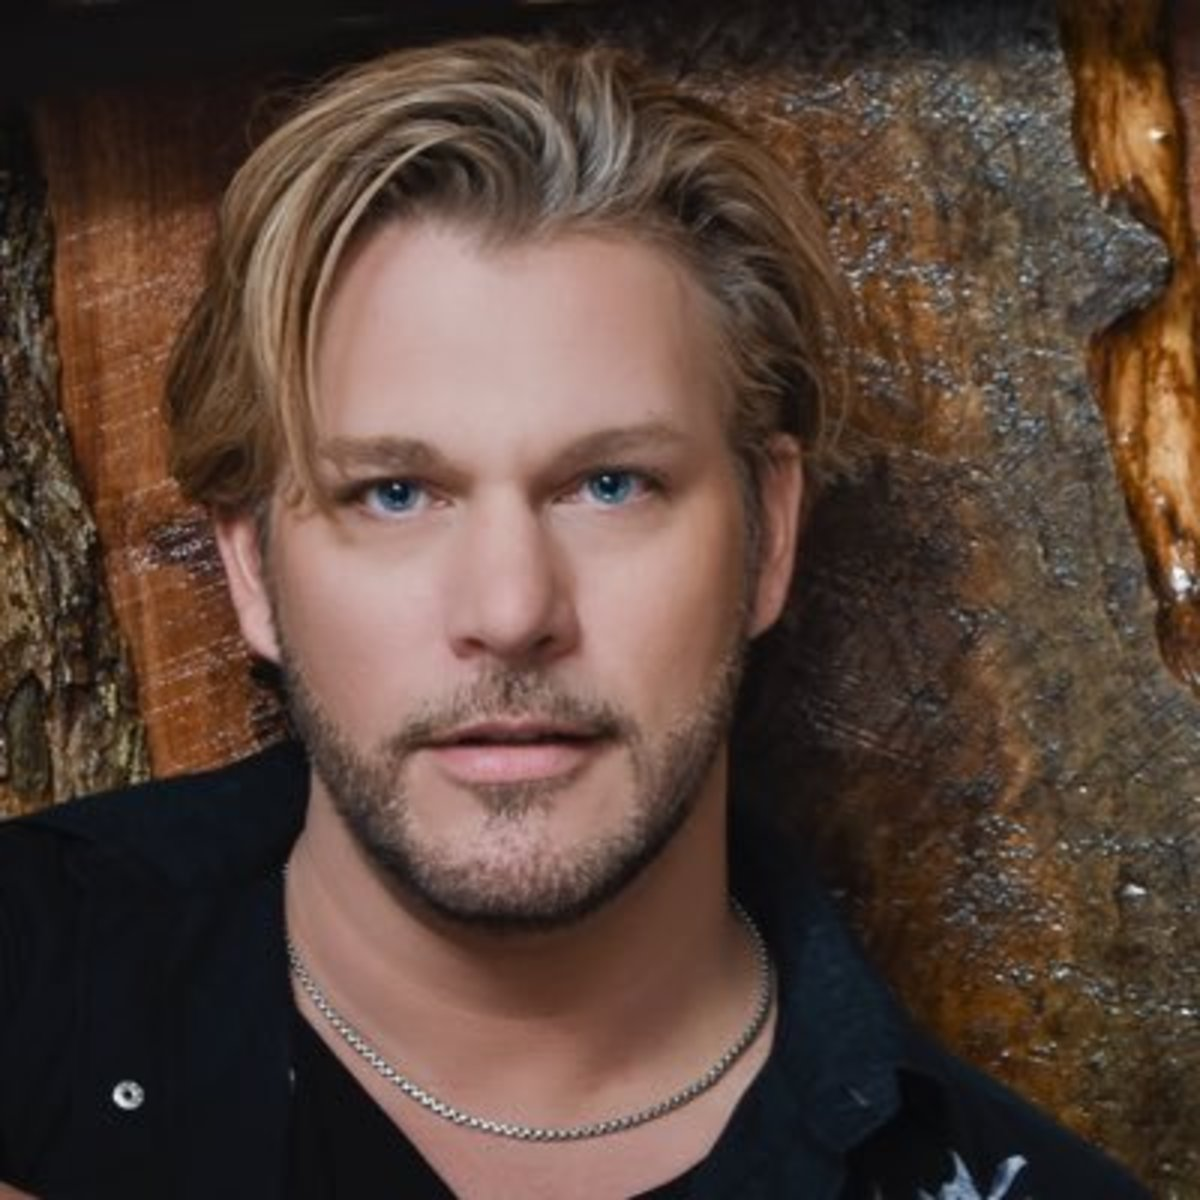 craig-wayne-boyd-has-the-voice-country-music-fans-want-to-hear